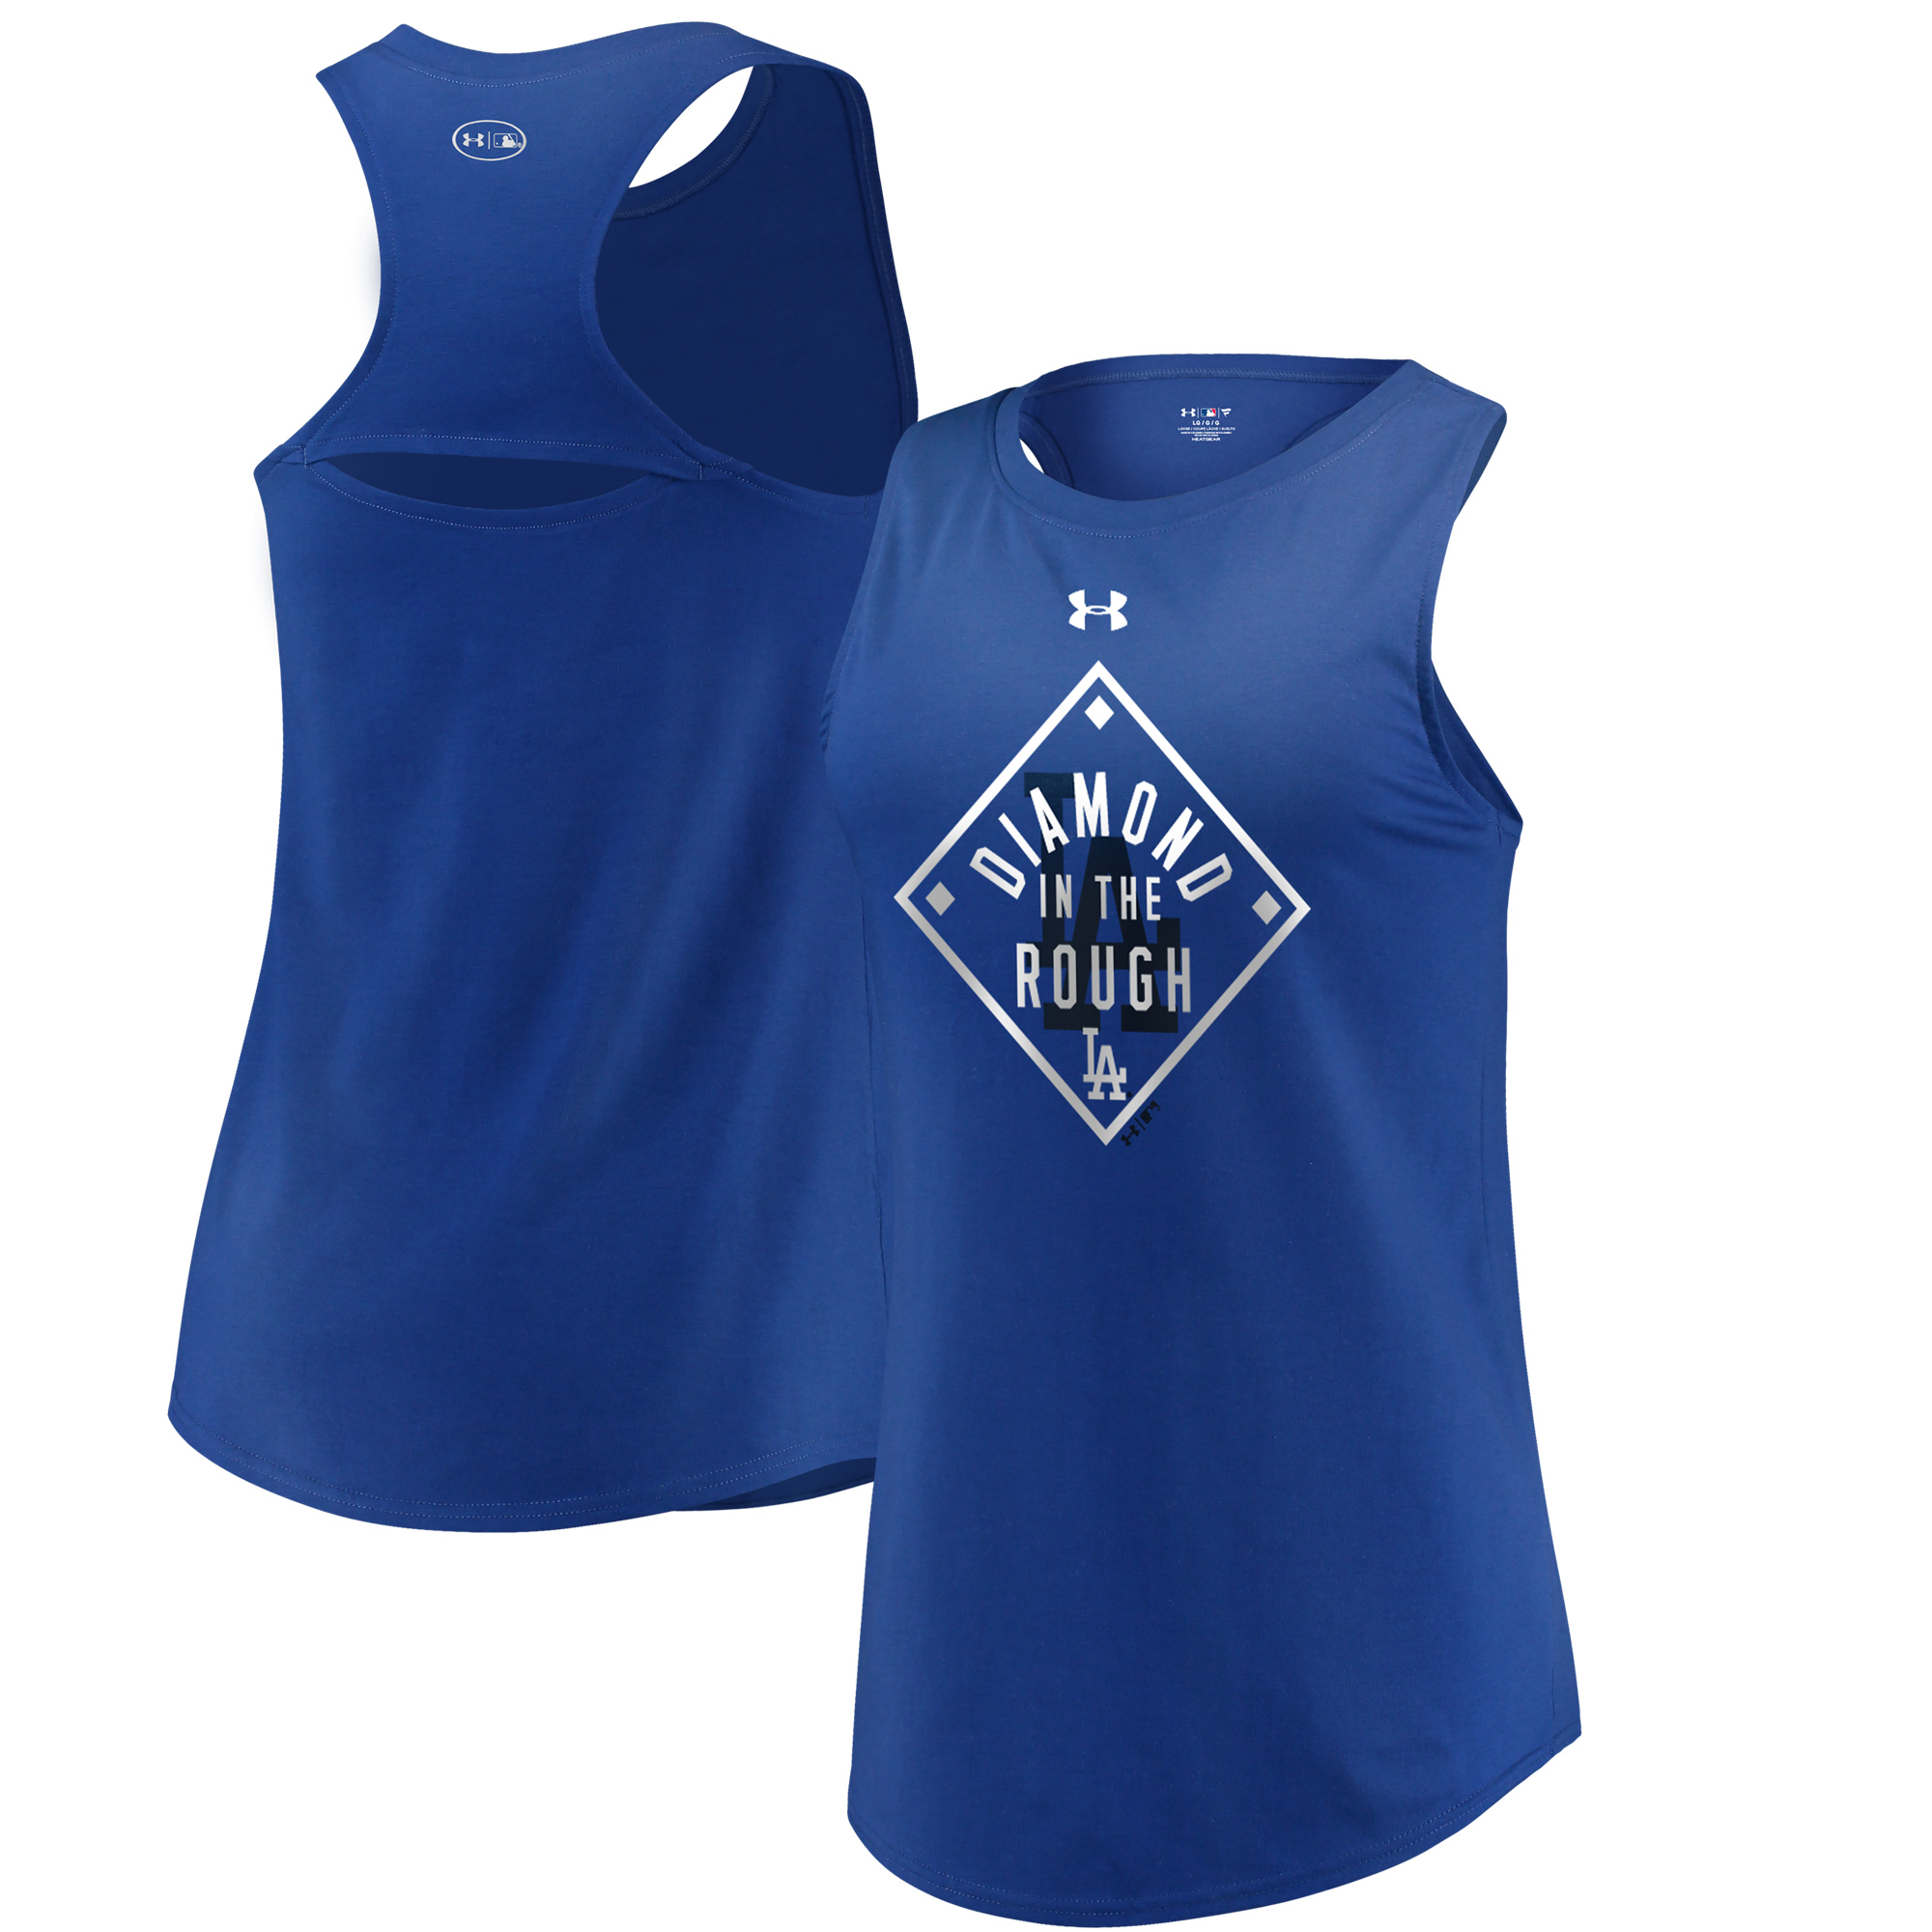 Los Angeles Dodgers Under Armour Women's Passion Diamond Tri-Blend Performance Tank Top Royal by MAJESTIC LSG